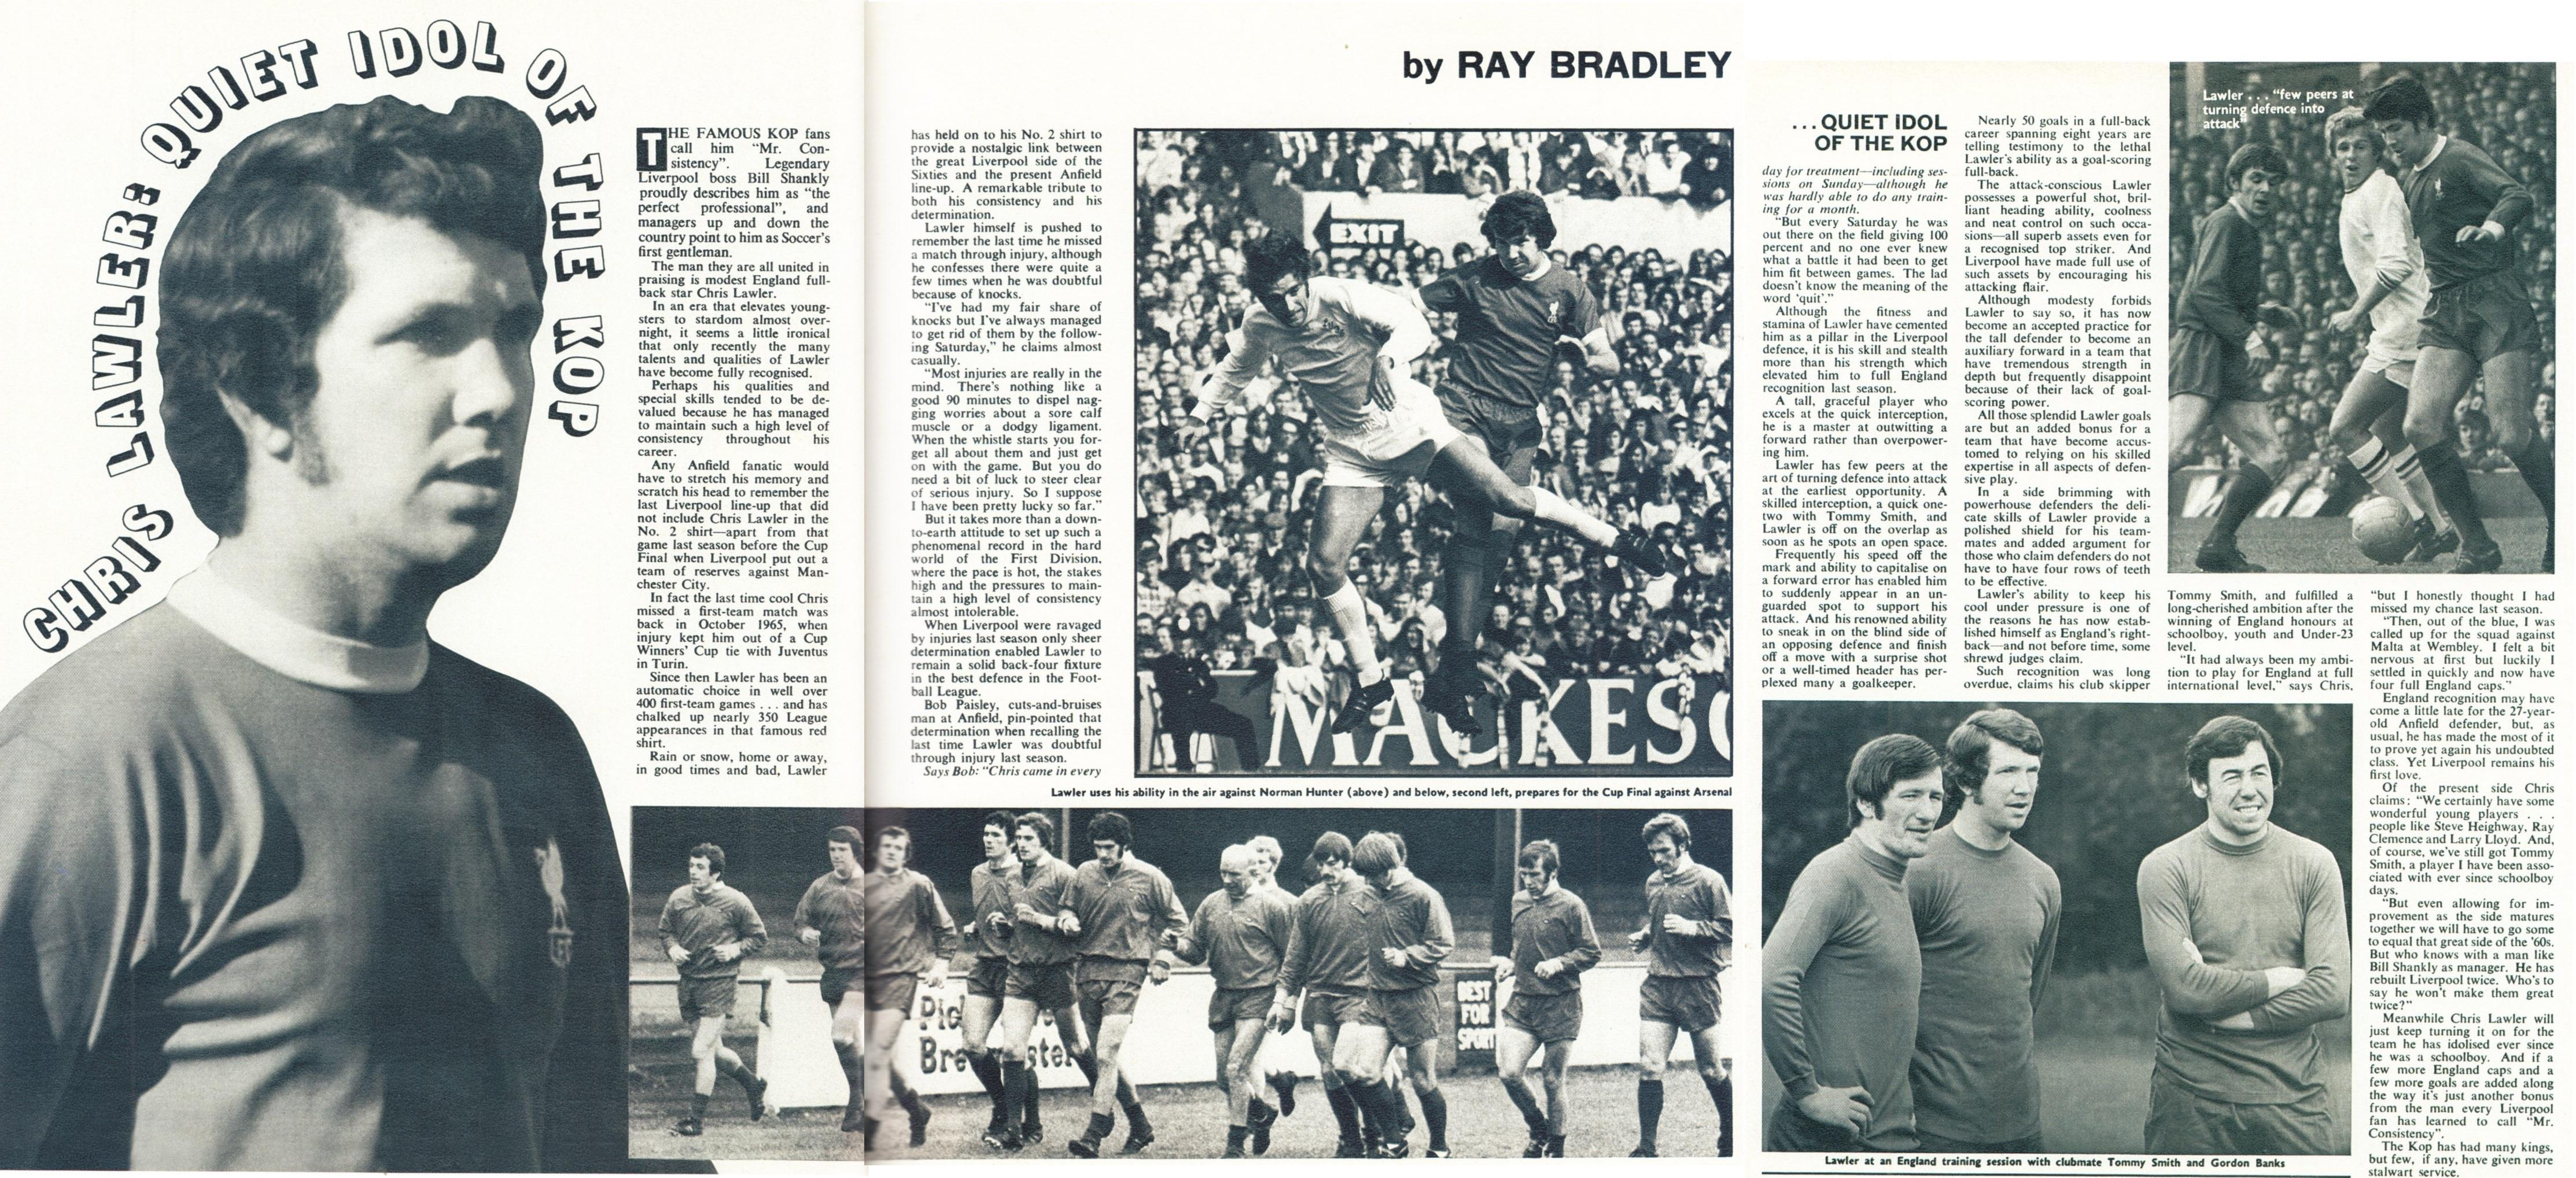 The quiet idol of the Kop - Football Monthly January 1972